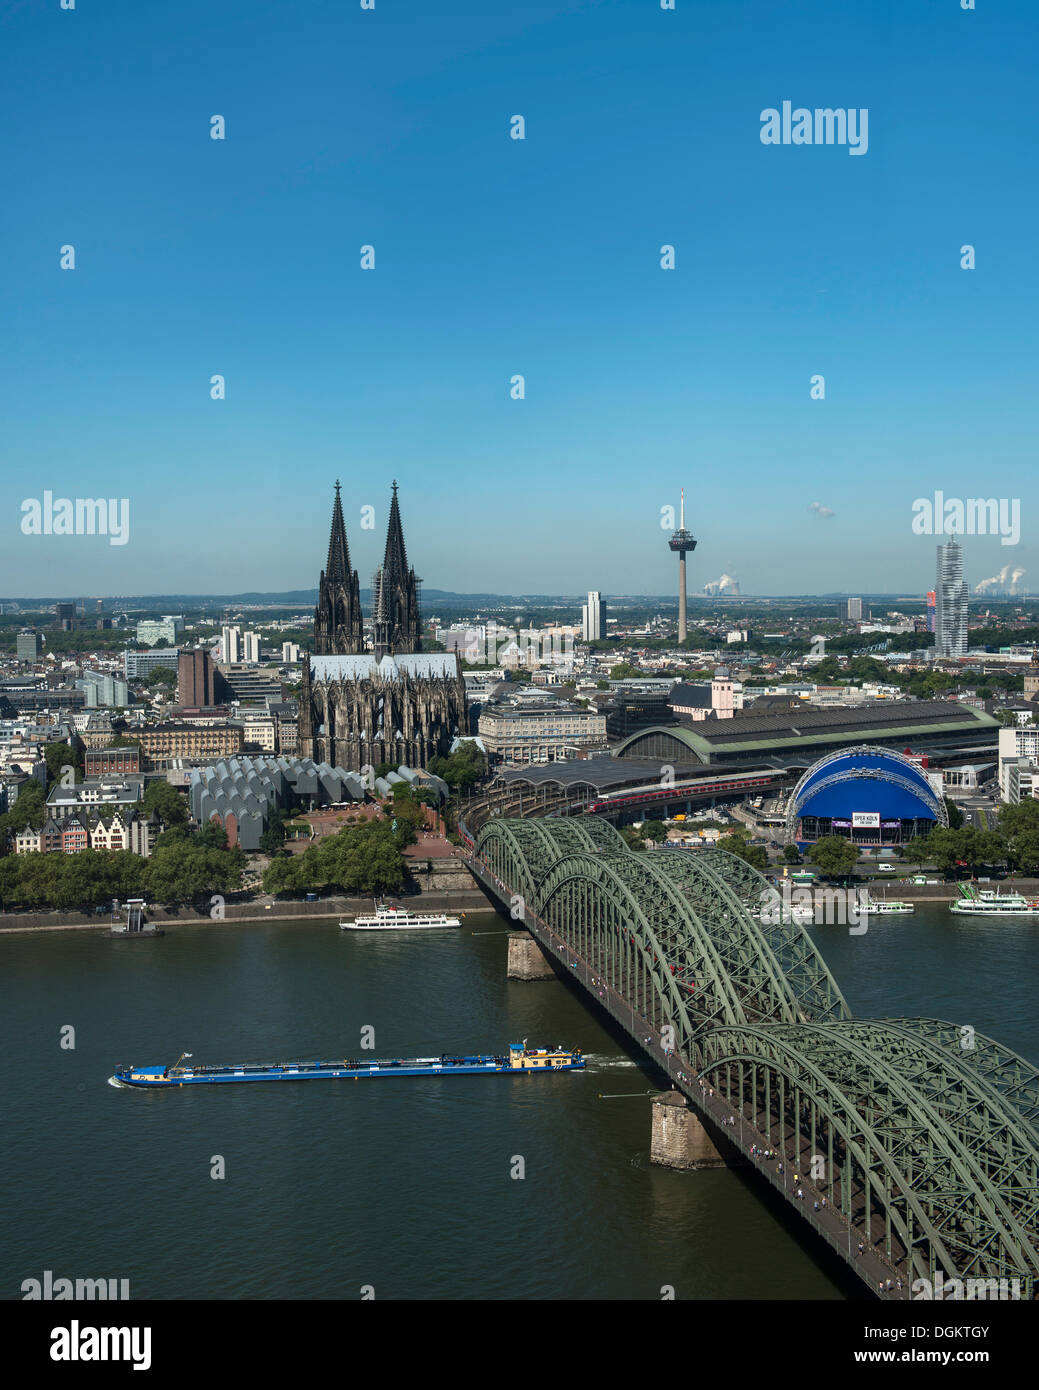 View across the Rhine river, view of the historic district, Museum Ludwig, Cologne Cathedral, Central Station, the Opernzelt - Stock Image